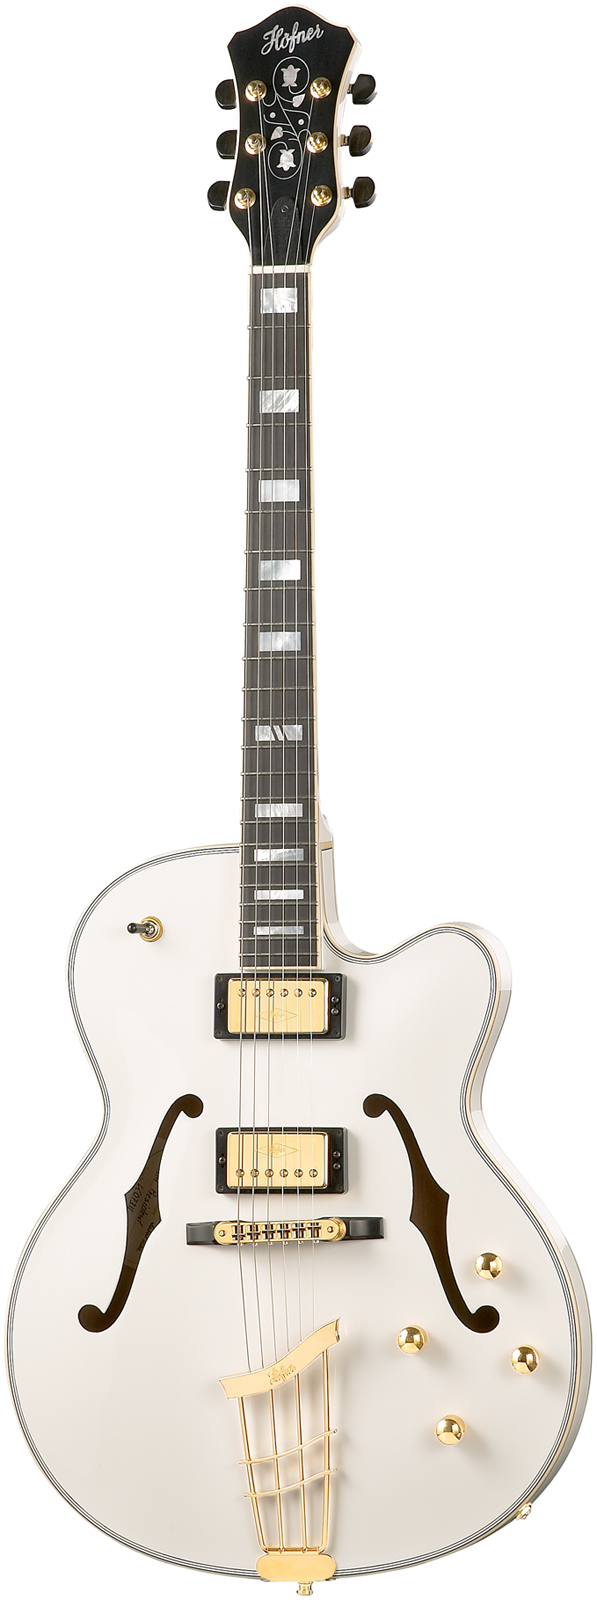 Gibson ES-135 - Sound difference between stoptail and trapeze tailpiece hollowbody?-hofner-htp-e2-w-0-jpg